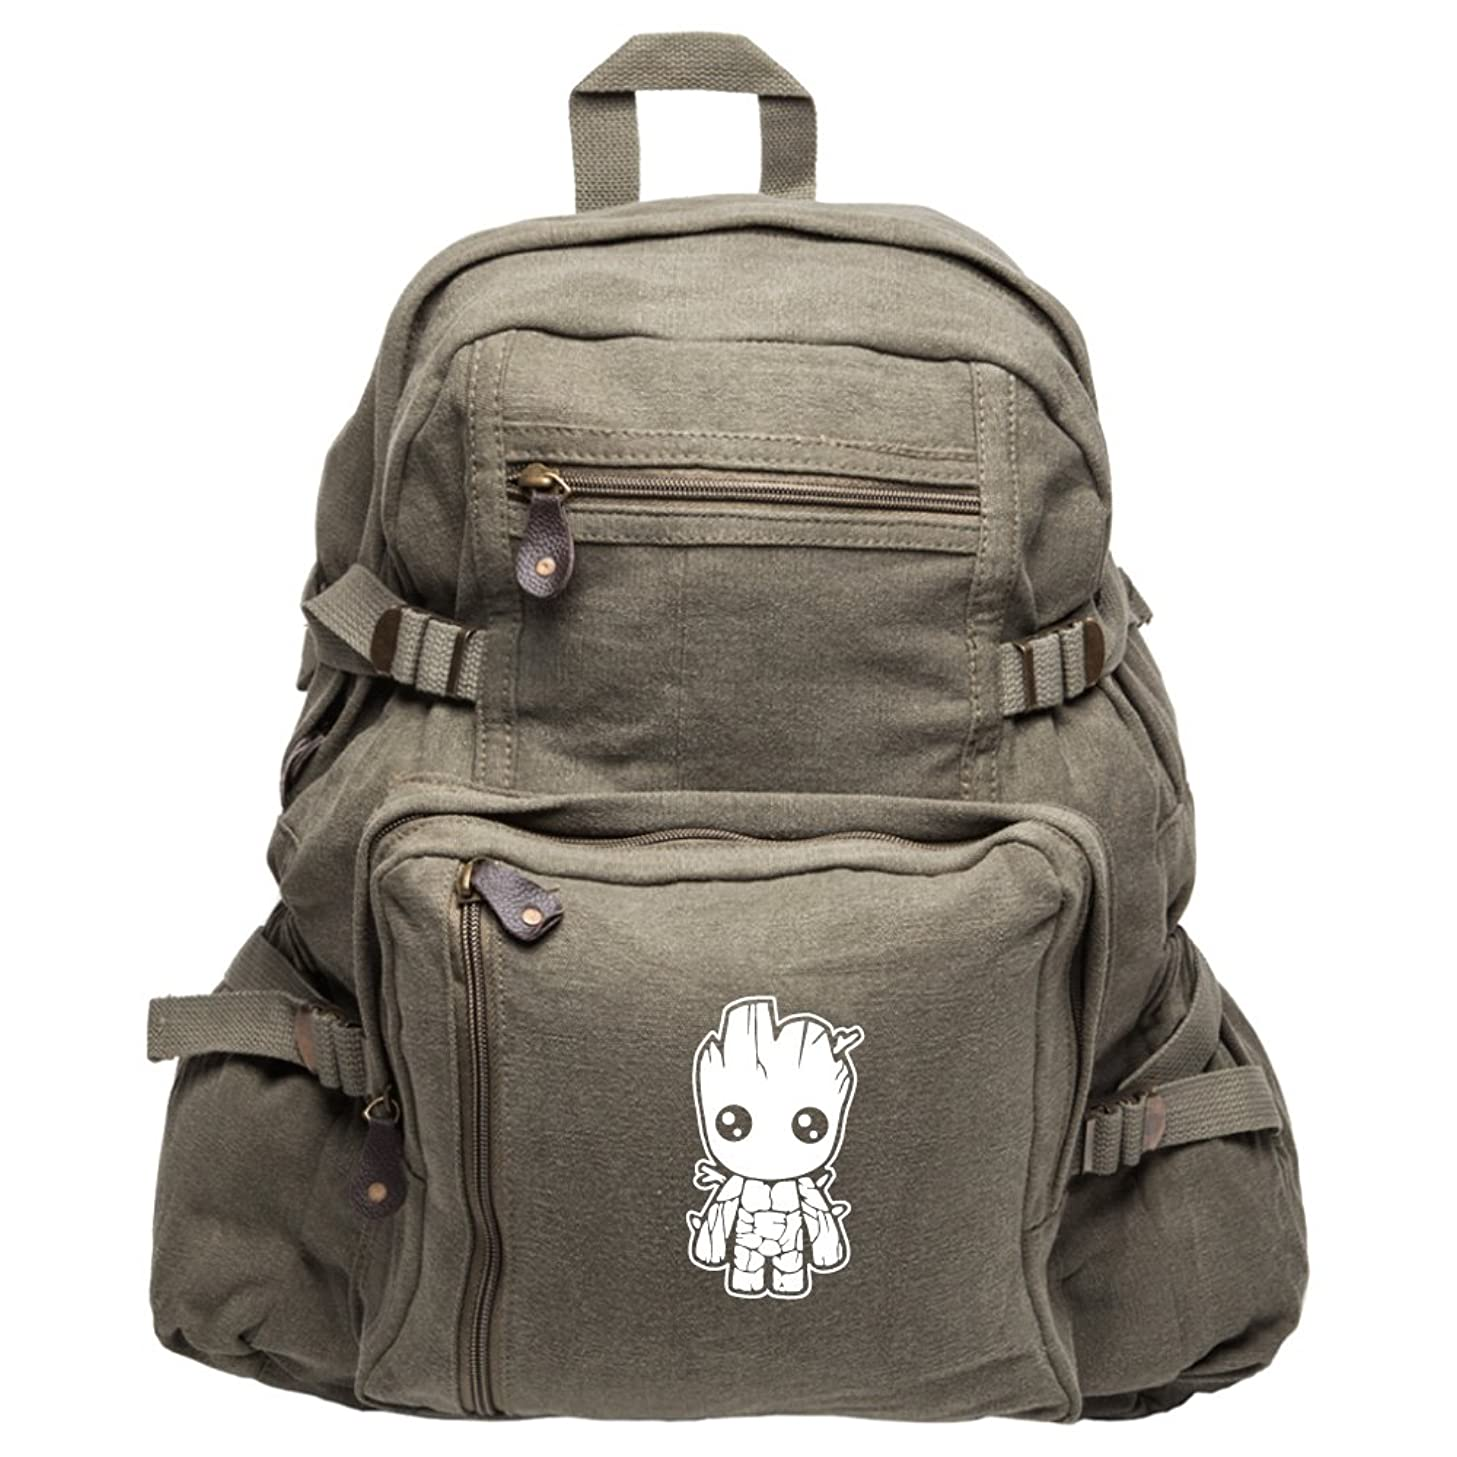 Baby Groot Guardians of the Galaxy Canvas Backpack Bag, Olive & White (Large)